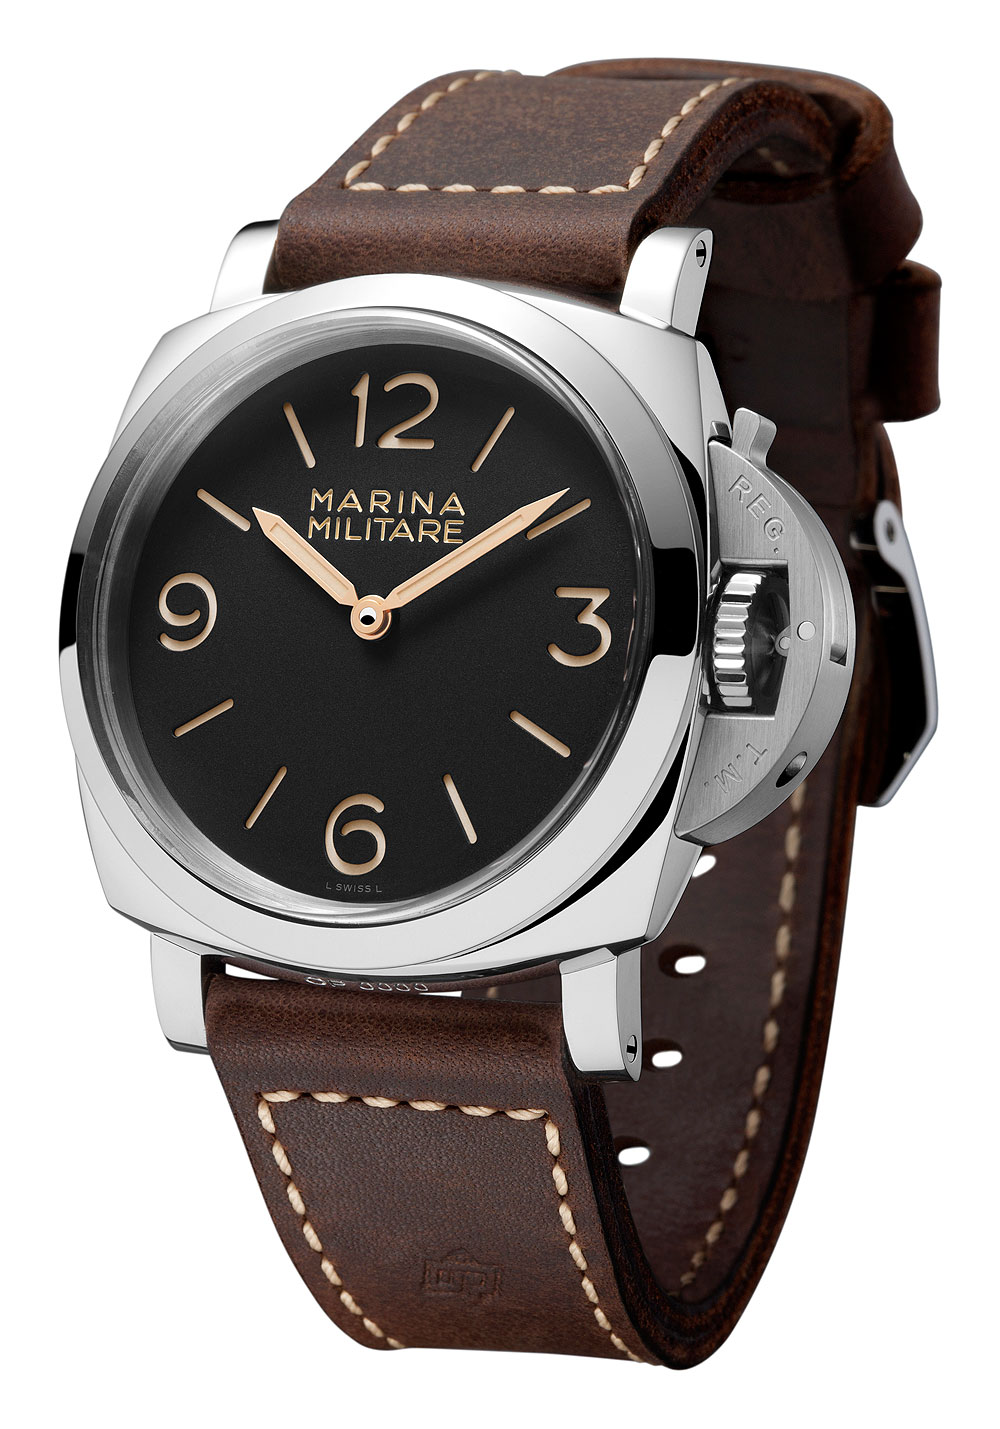 Panerai Luminor 1950 3 Days Acciaio - soldier